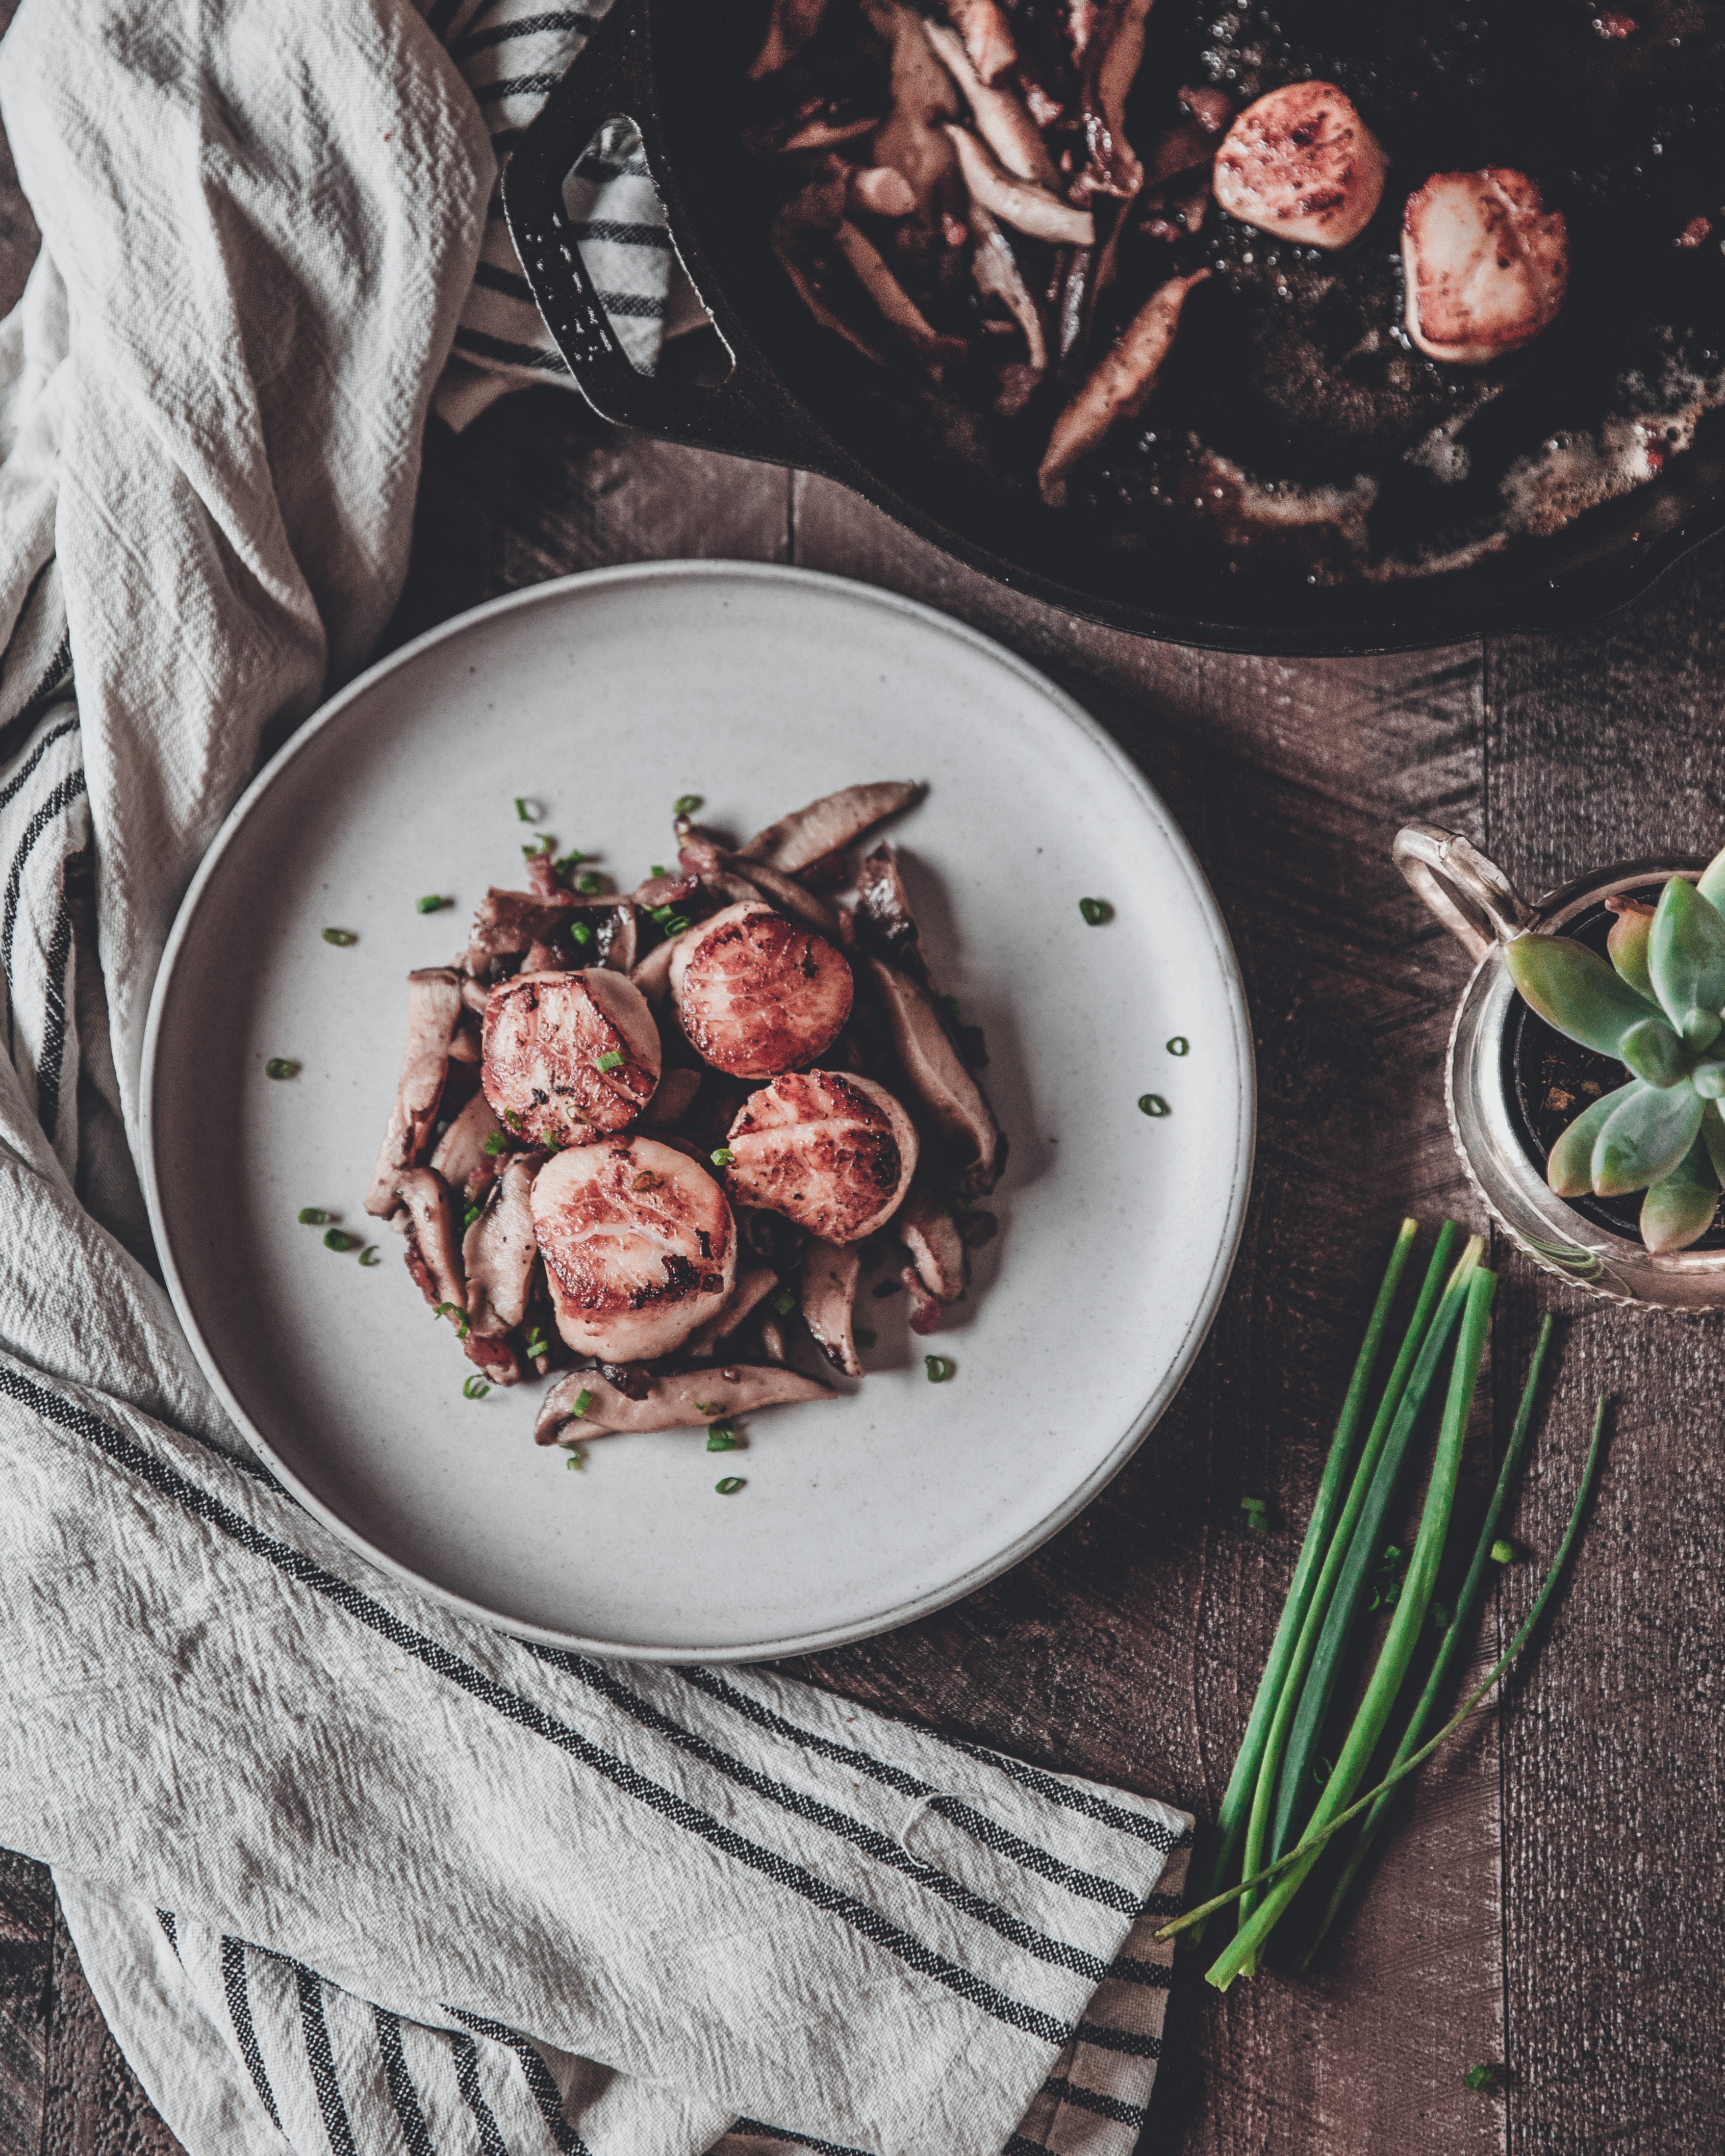 Scallops with Bacon, Mushrooms and Chives